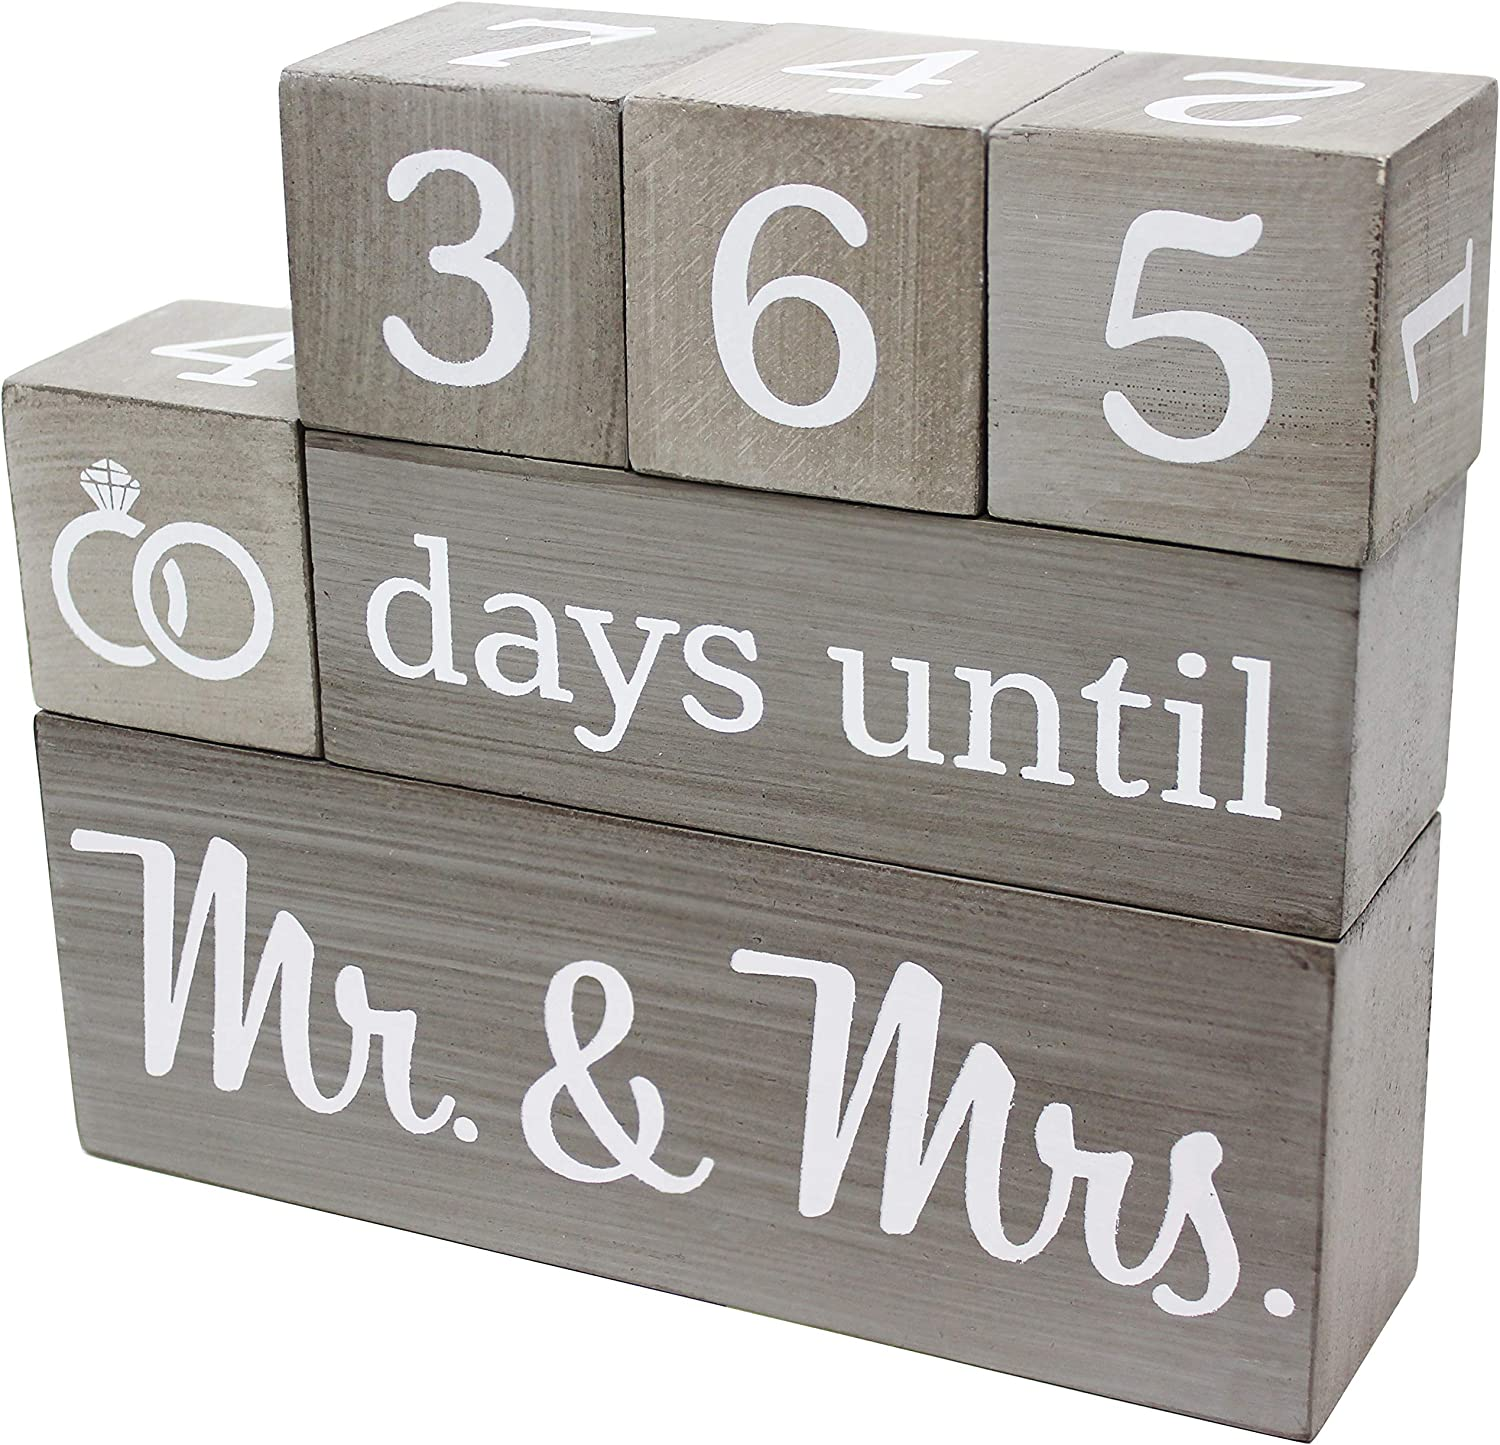 Wedding Countdown Calendar Max 51% OFF Wooden Blocks Engagement Free Shipping Cheap Bargain Gift Gifts - Br